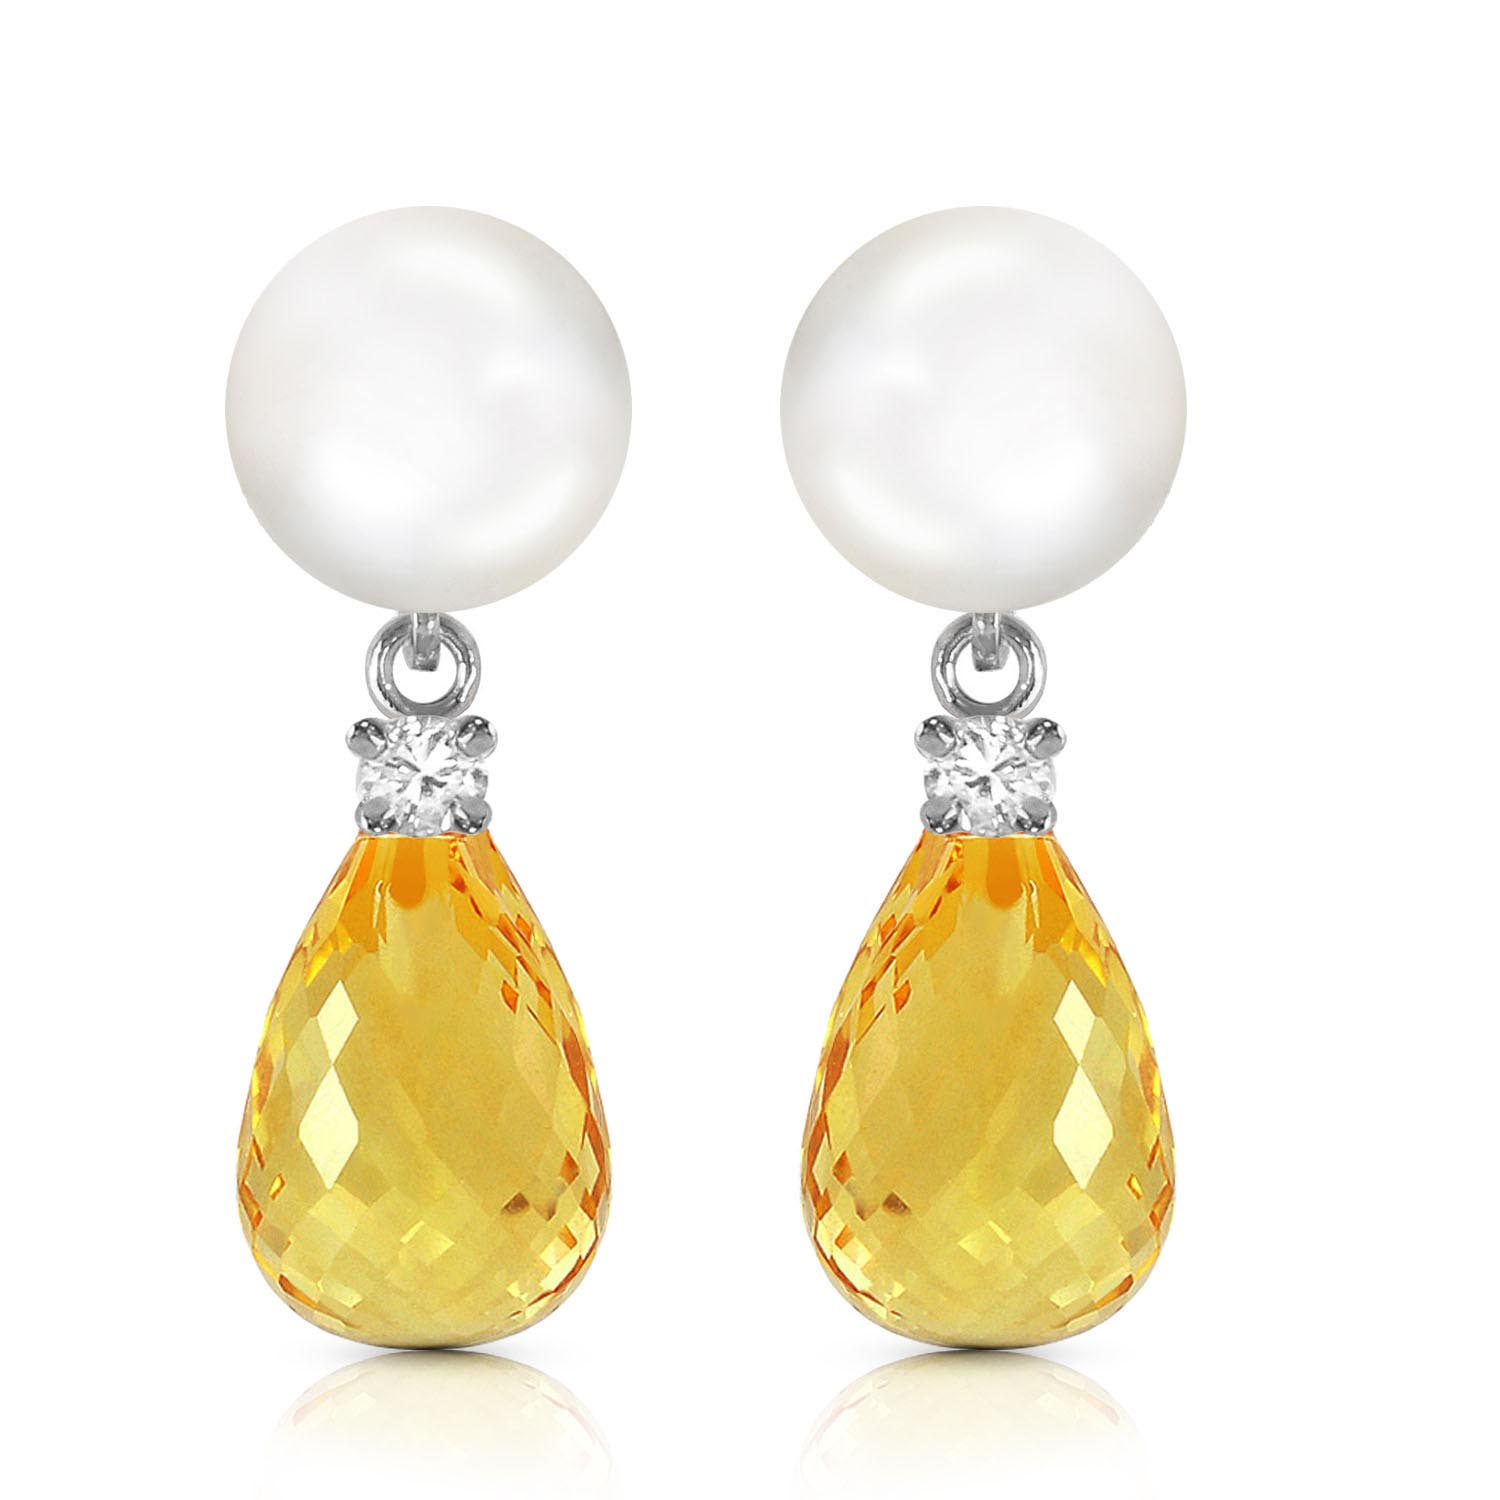 Pearl, Diamond and Citrine Stud Earrings 6.5ctw in 9ct White Gold